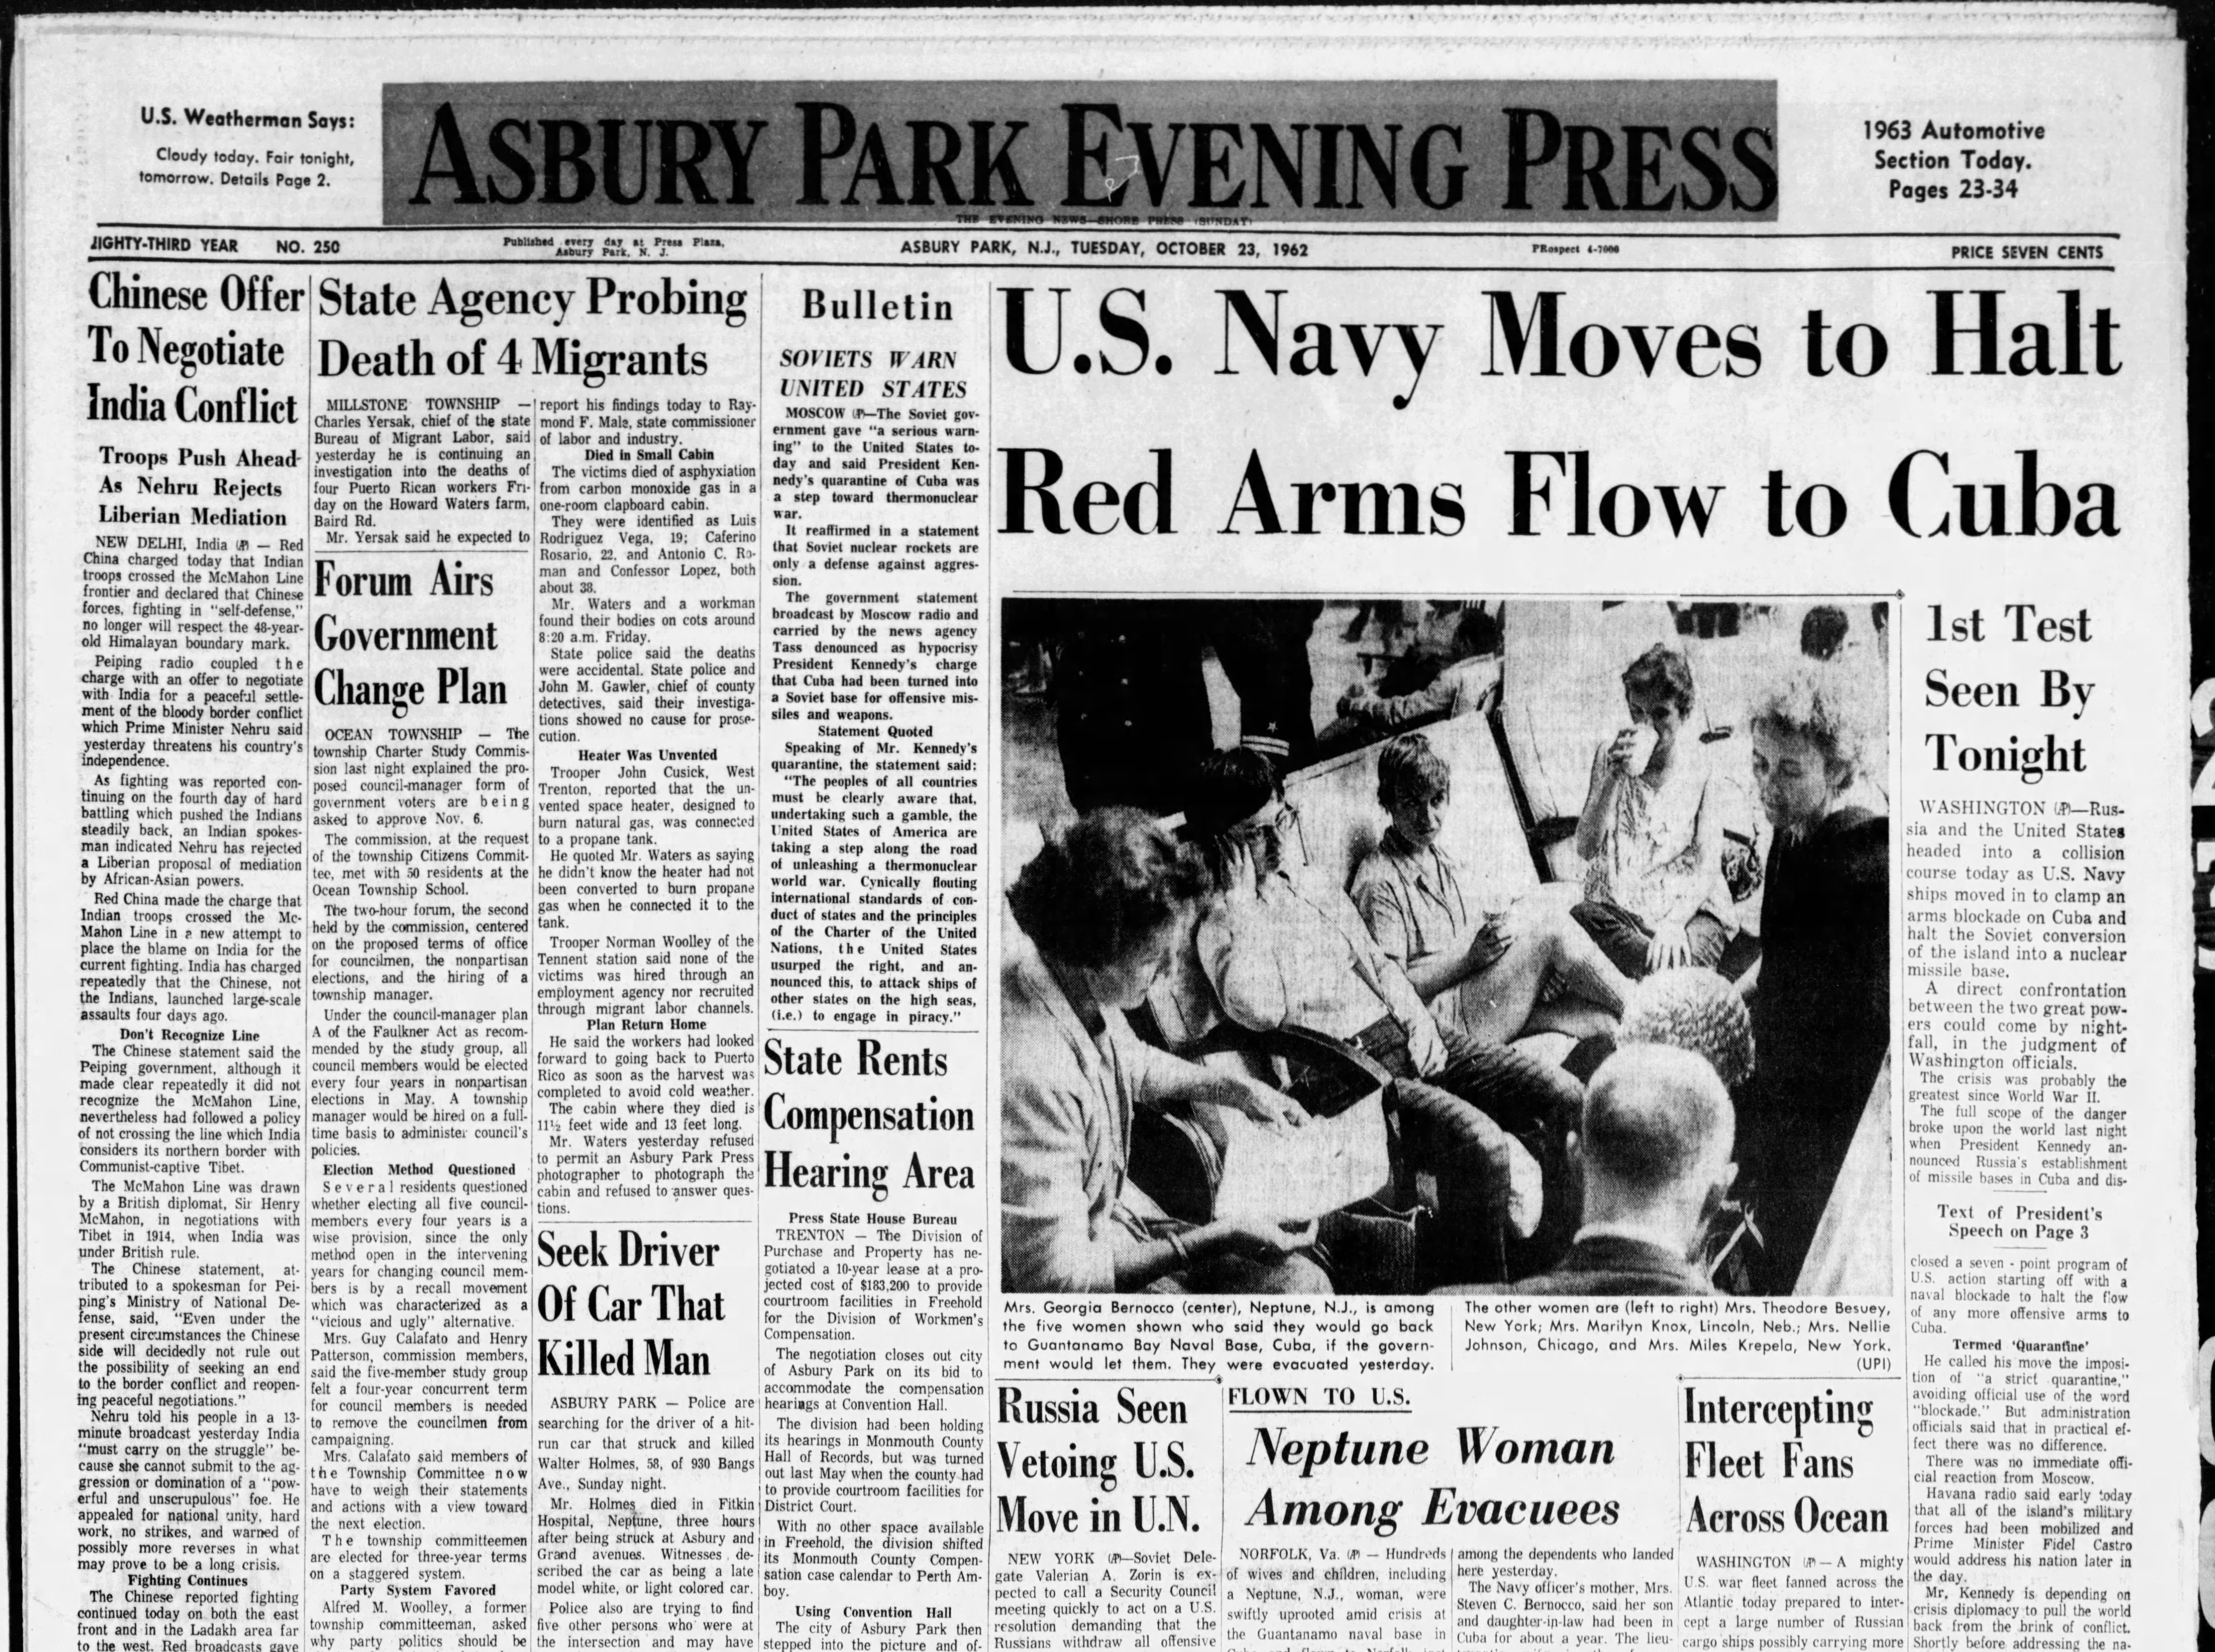 The Cuban Missile Crisis brings human civilization to the brink of World War III and nuclear annihilation. The Asbury Park Press covers the local impact to the Jersey Shore in this edition from Tuesday, Oct. 23, 1962.